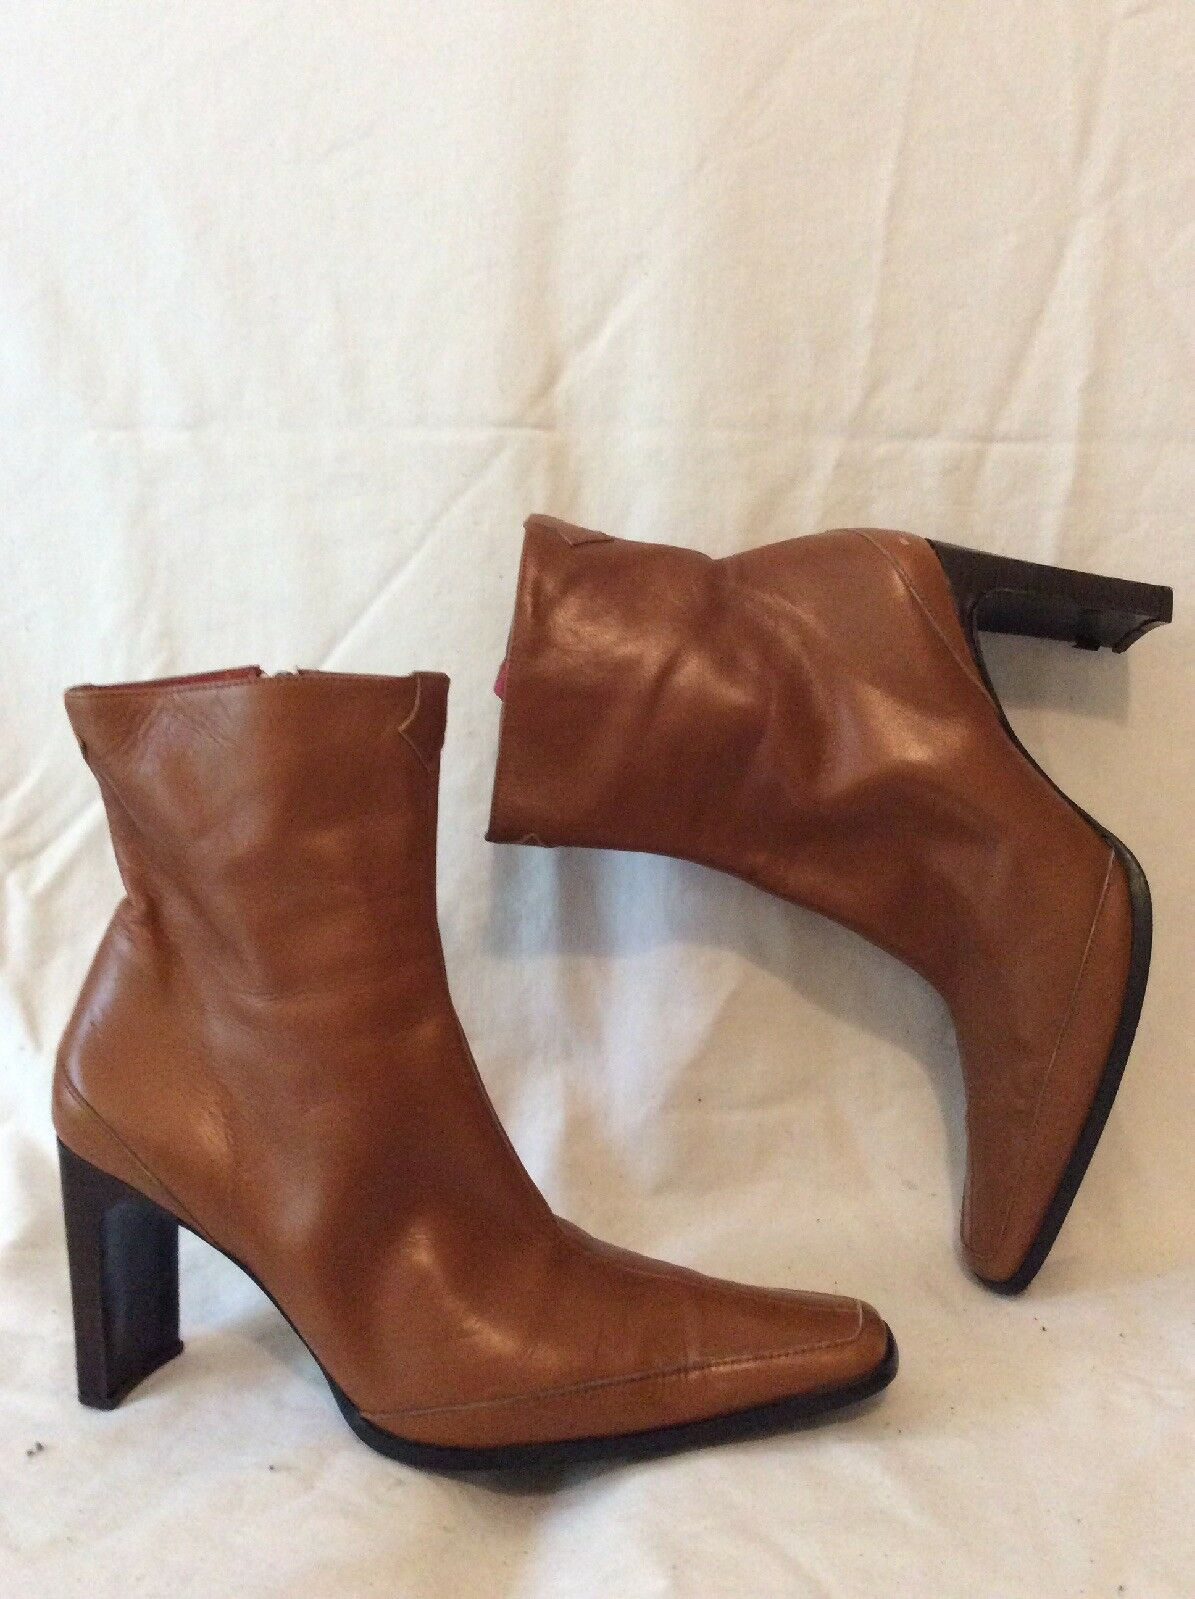 J&W By Jeffery West Brown Ankle Leather Boots Size 38